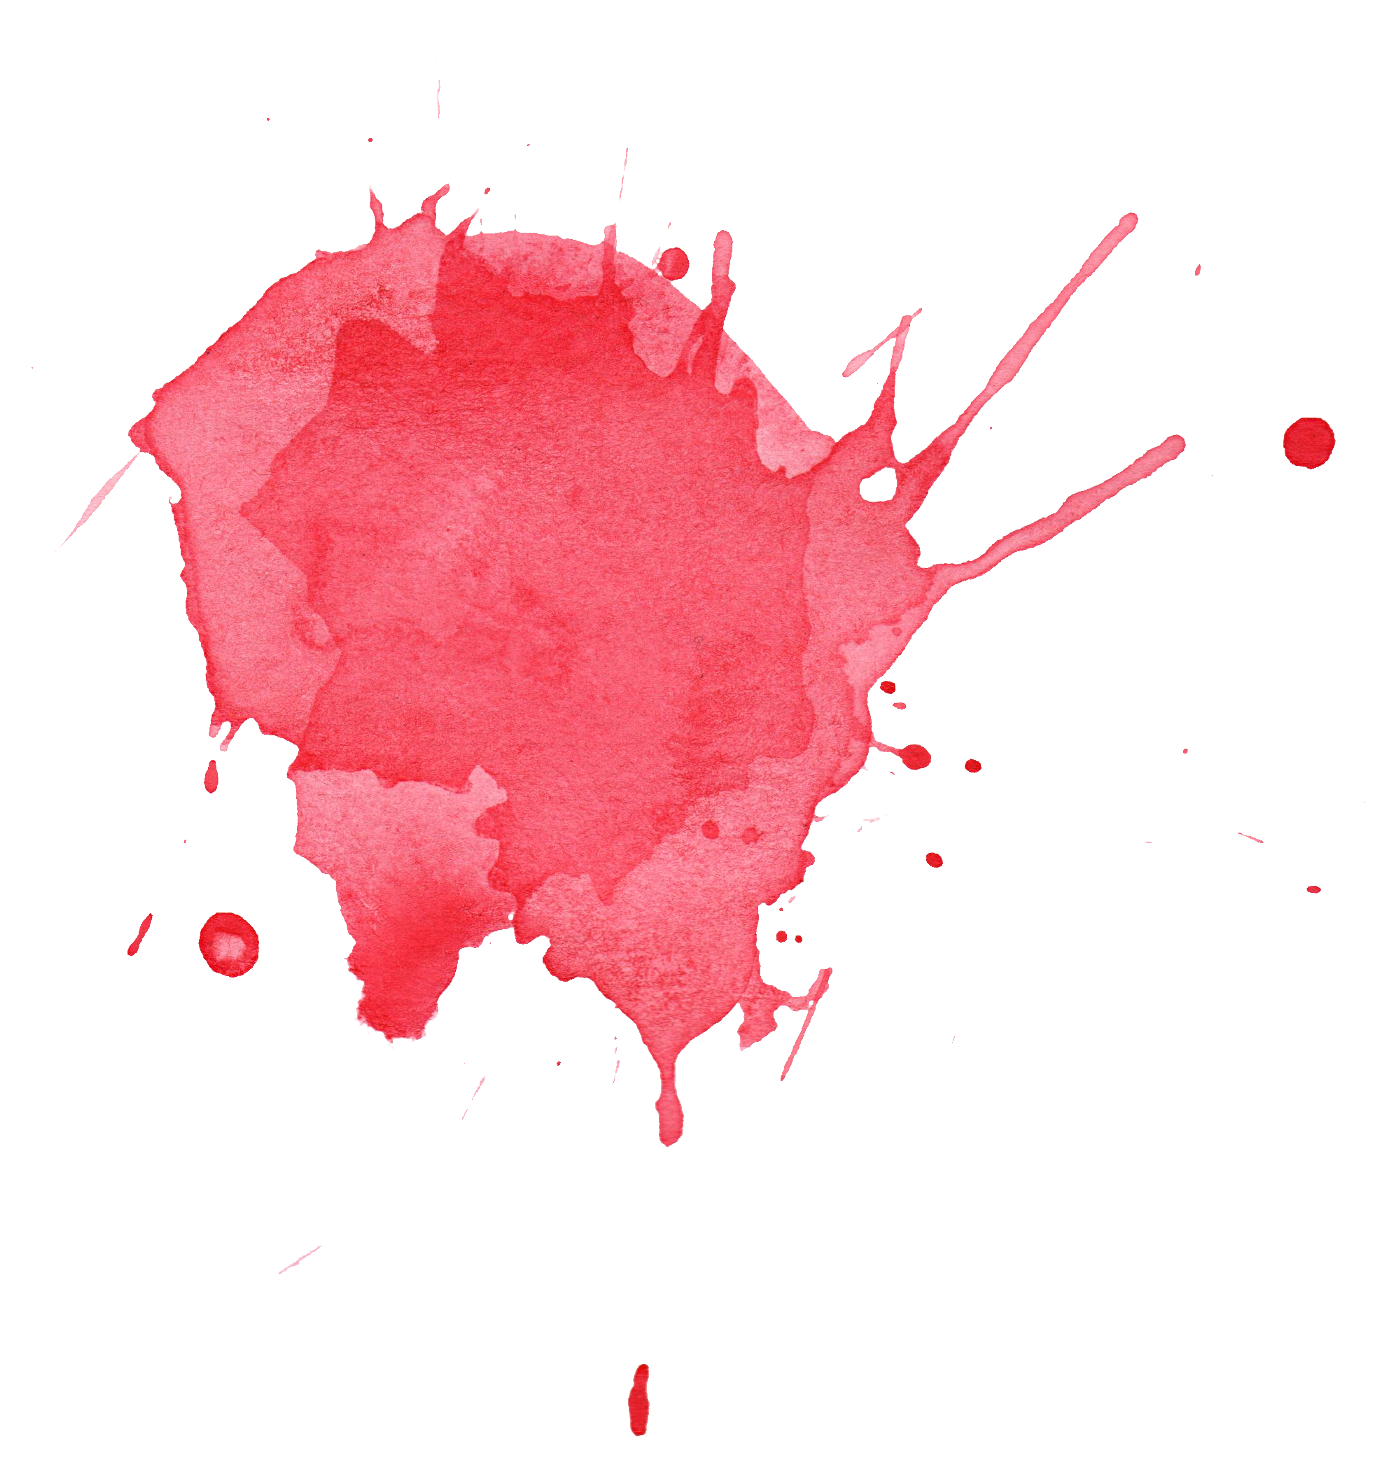 red splatter png